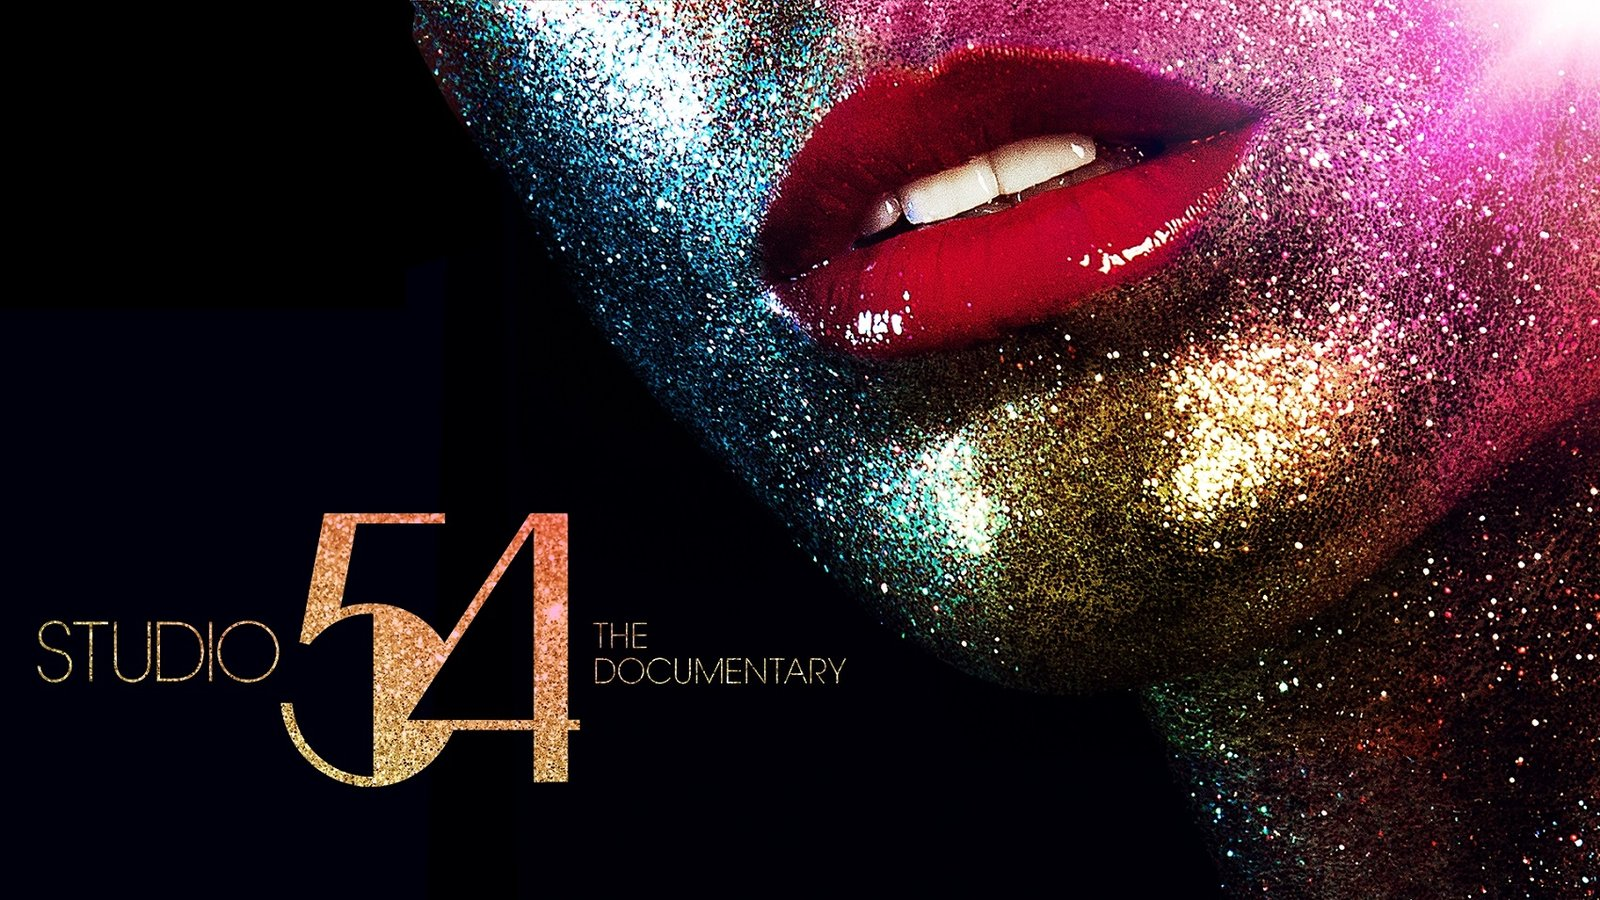 Studio 54 - The Story Behind the Infamous NYC Club